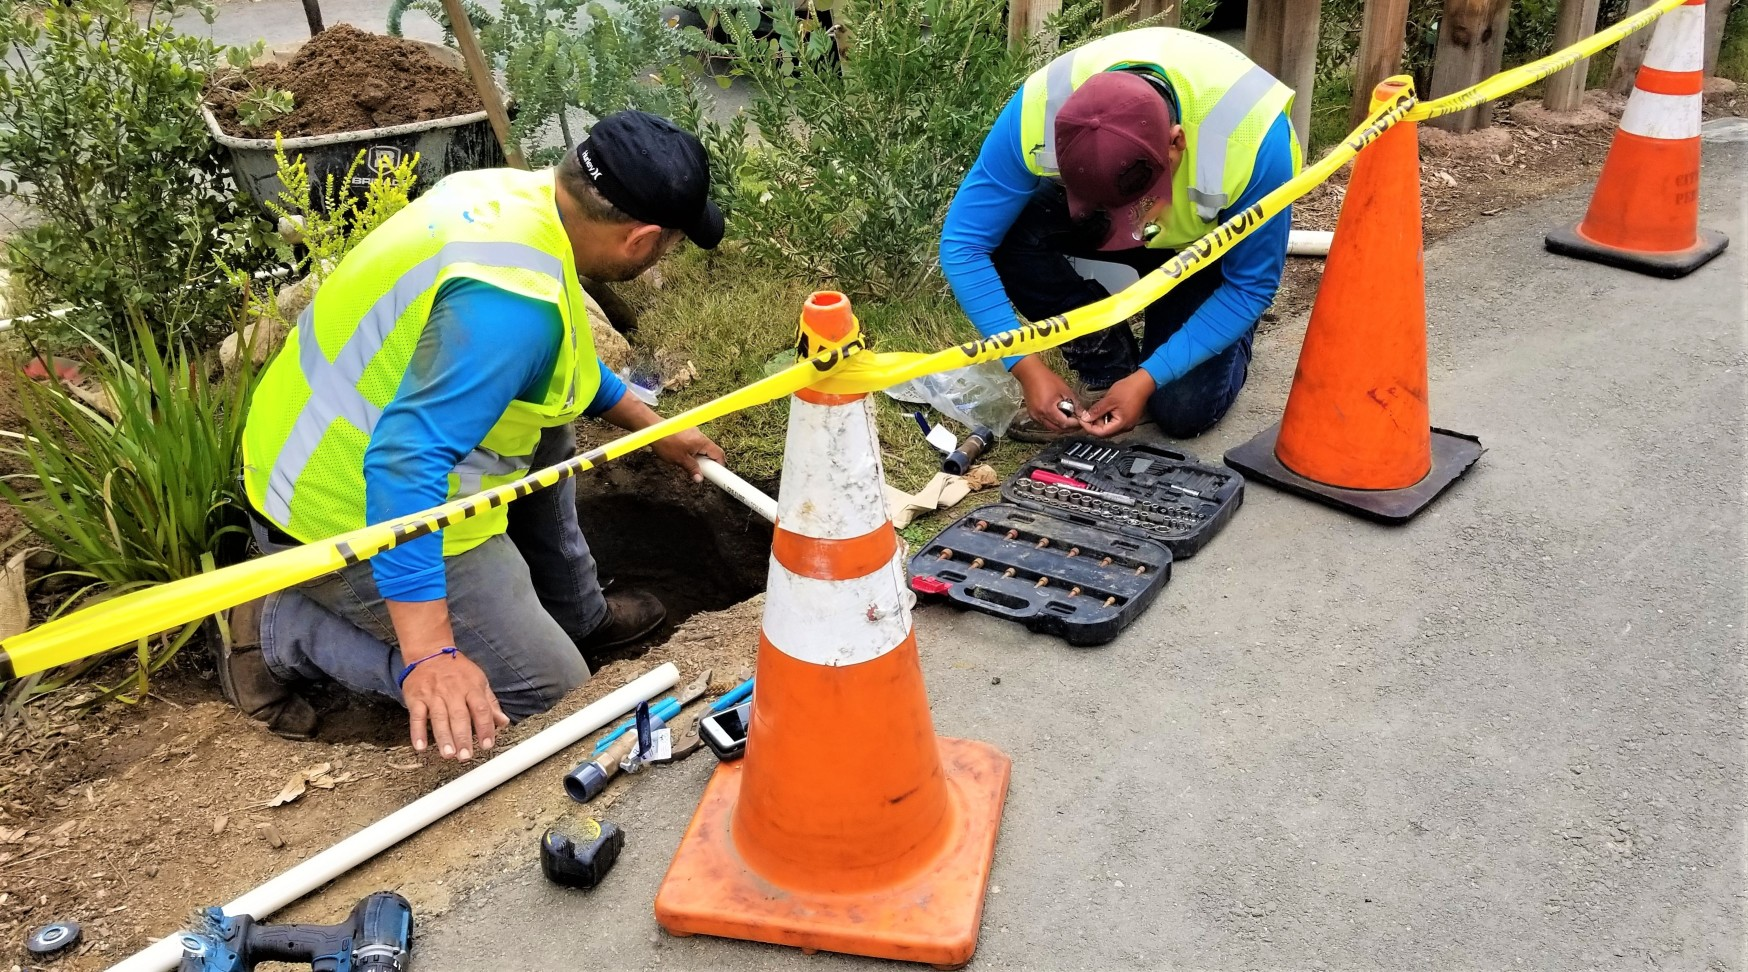 people-two-men-city-workers-in-a-hole-in-the-ground-to-repair-the-plumbing-along-the-sidewalk-in-town